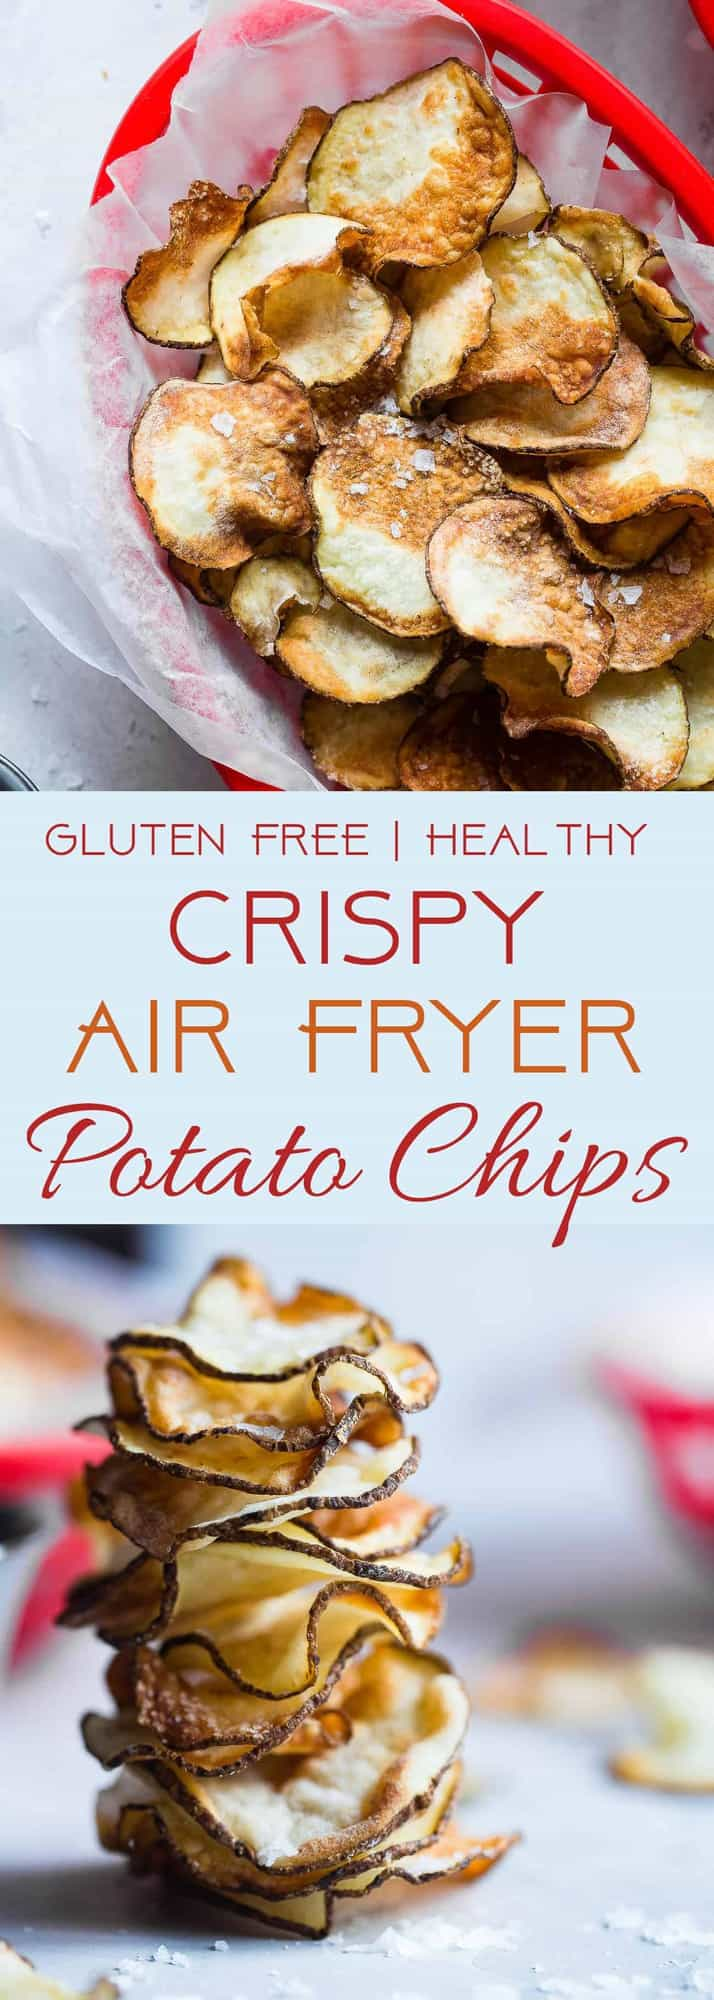 Air Fryer Potato Chips -These EASY Air Fryer Potato Chips are perfectly crispy and crunchy and only use 2 ingredients! You'll never believe they are healthy, vegan, gluten free and only 75 calories for a large serving! | #Foodfaithfitness | #Glutenfree #Airfryer #Healthy #Vegan #CleanEating